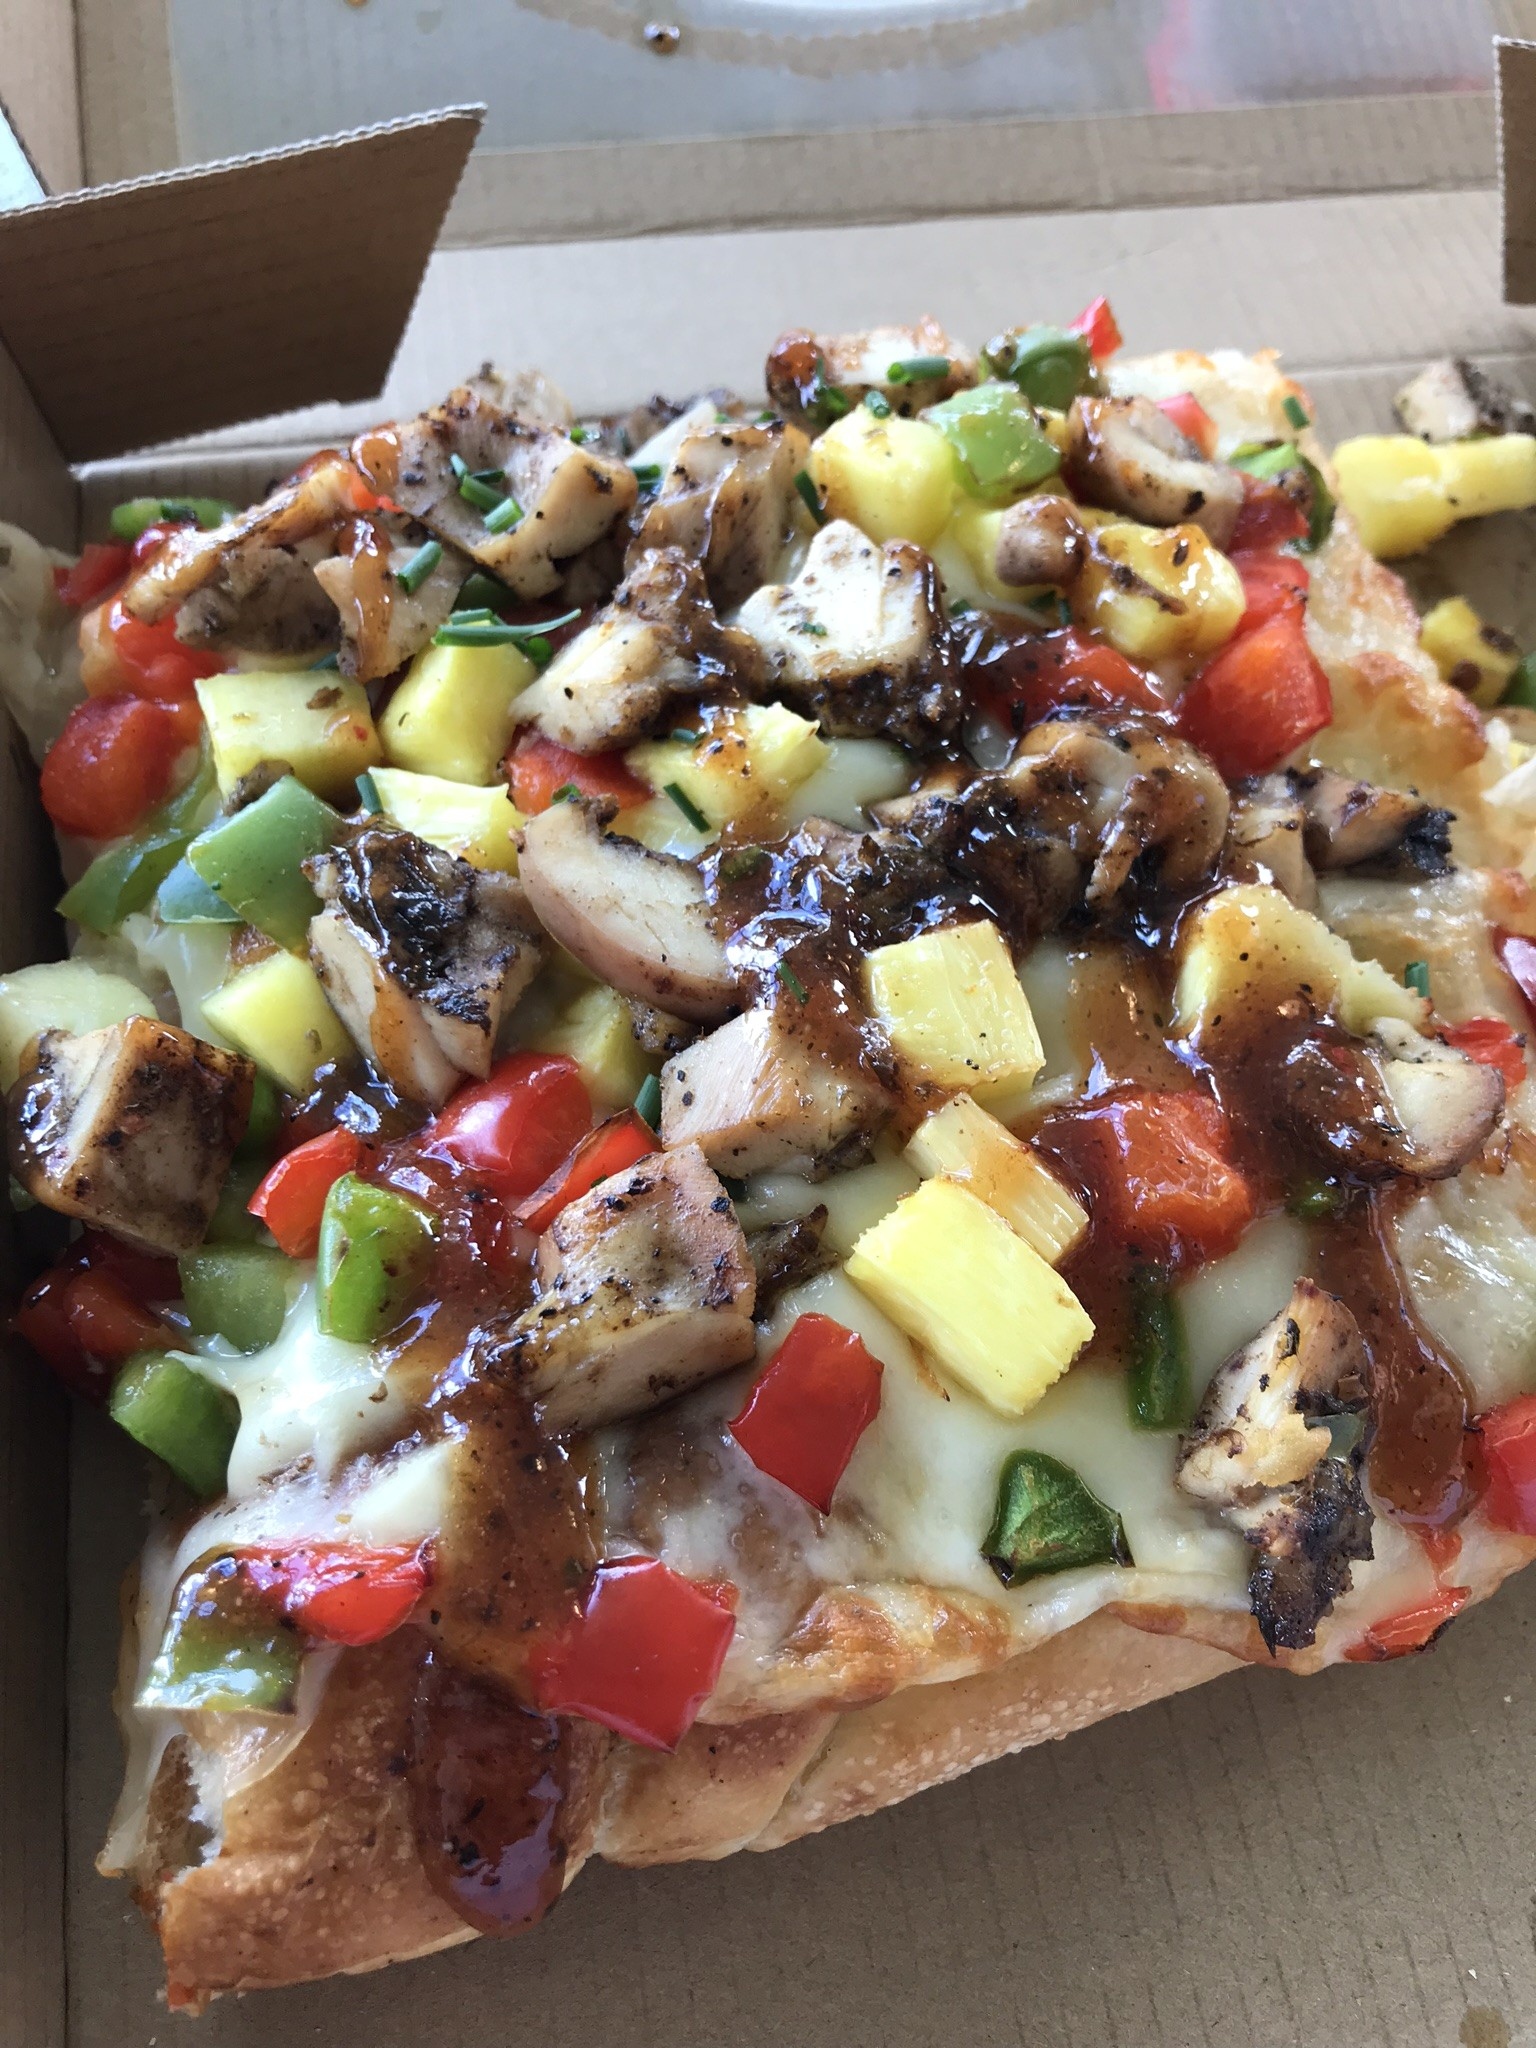 pizza with chunks of veggies and meat